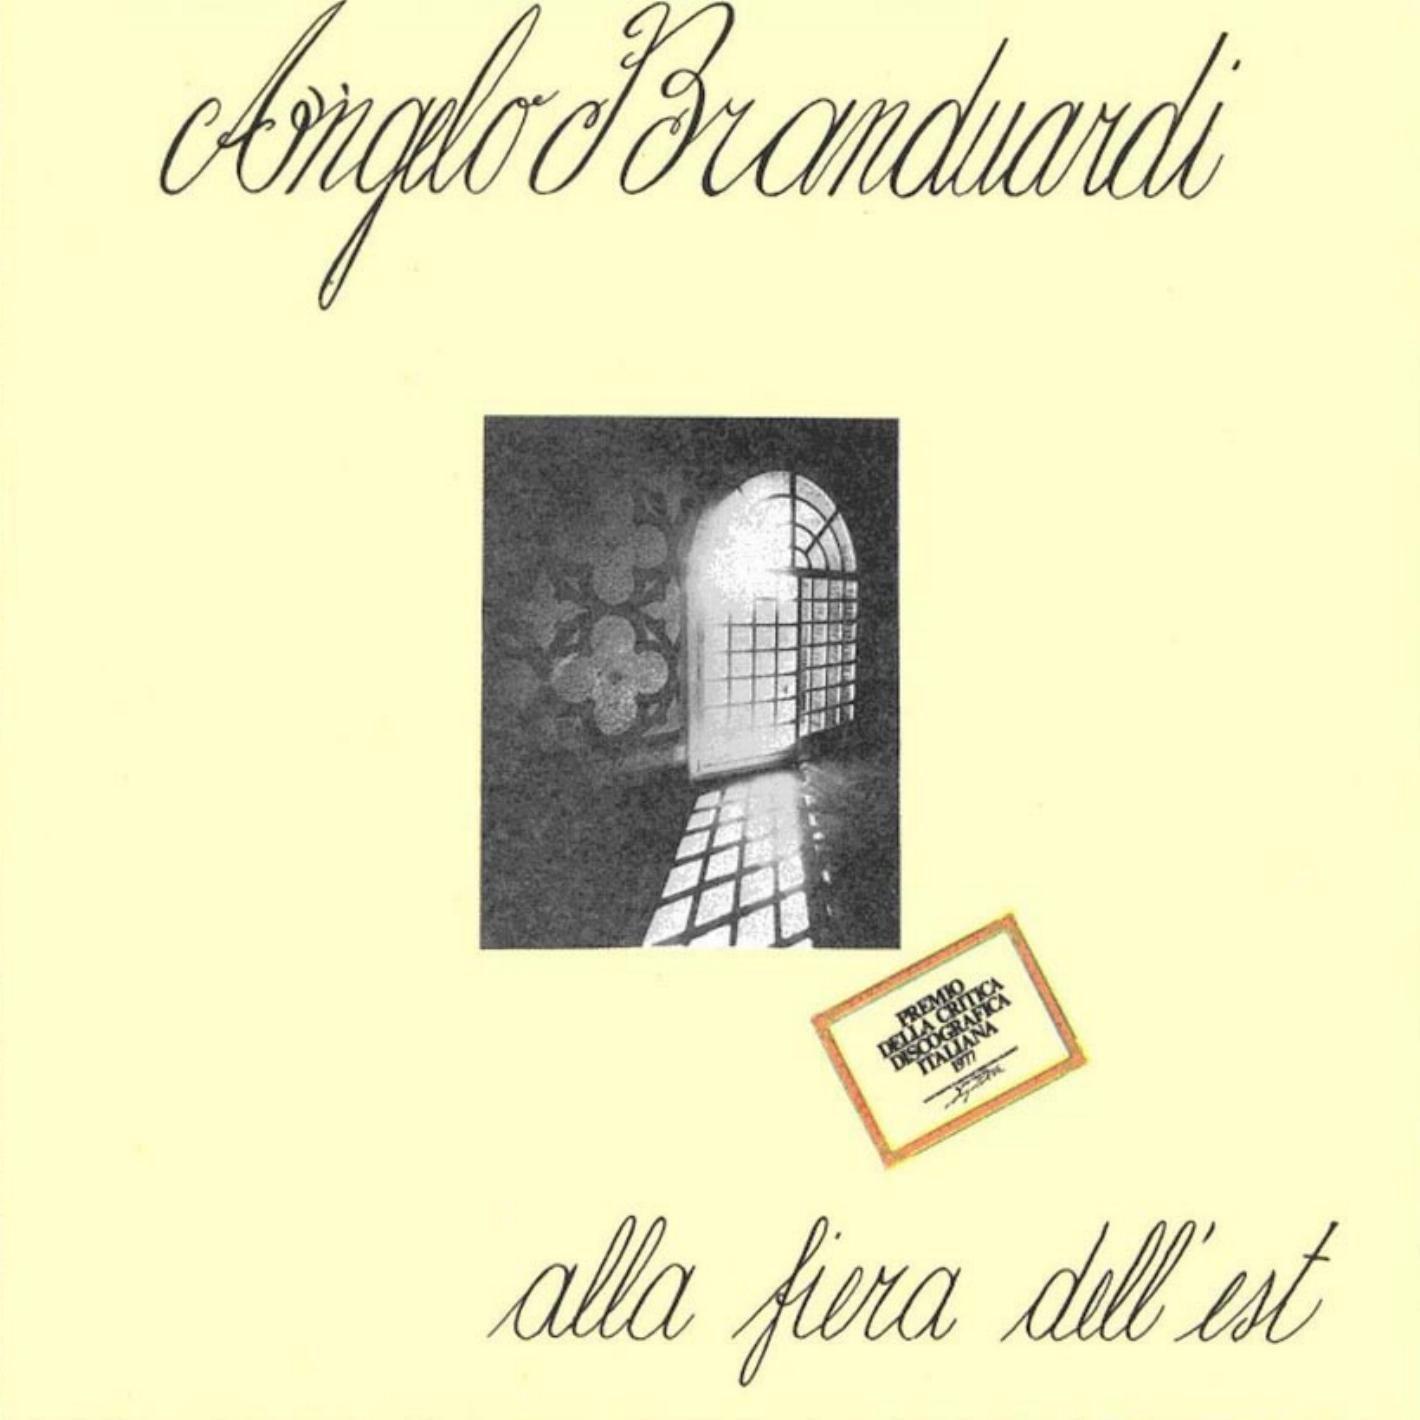 Angelo Branduardi - Alla fiera dell'Est - cover 1976